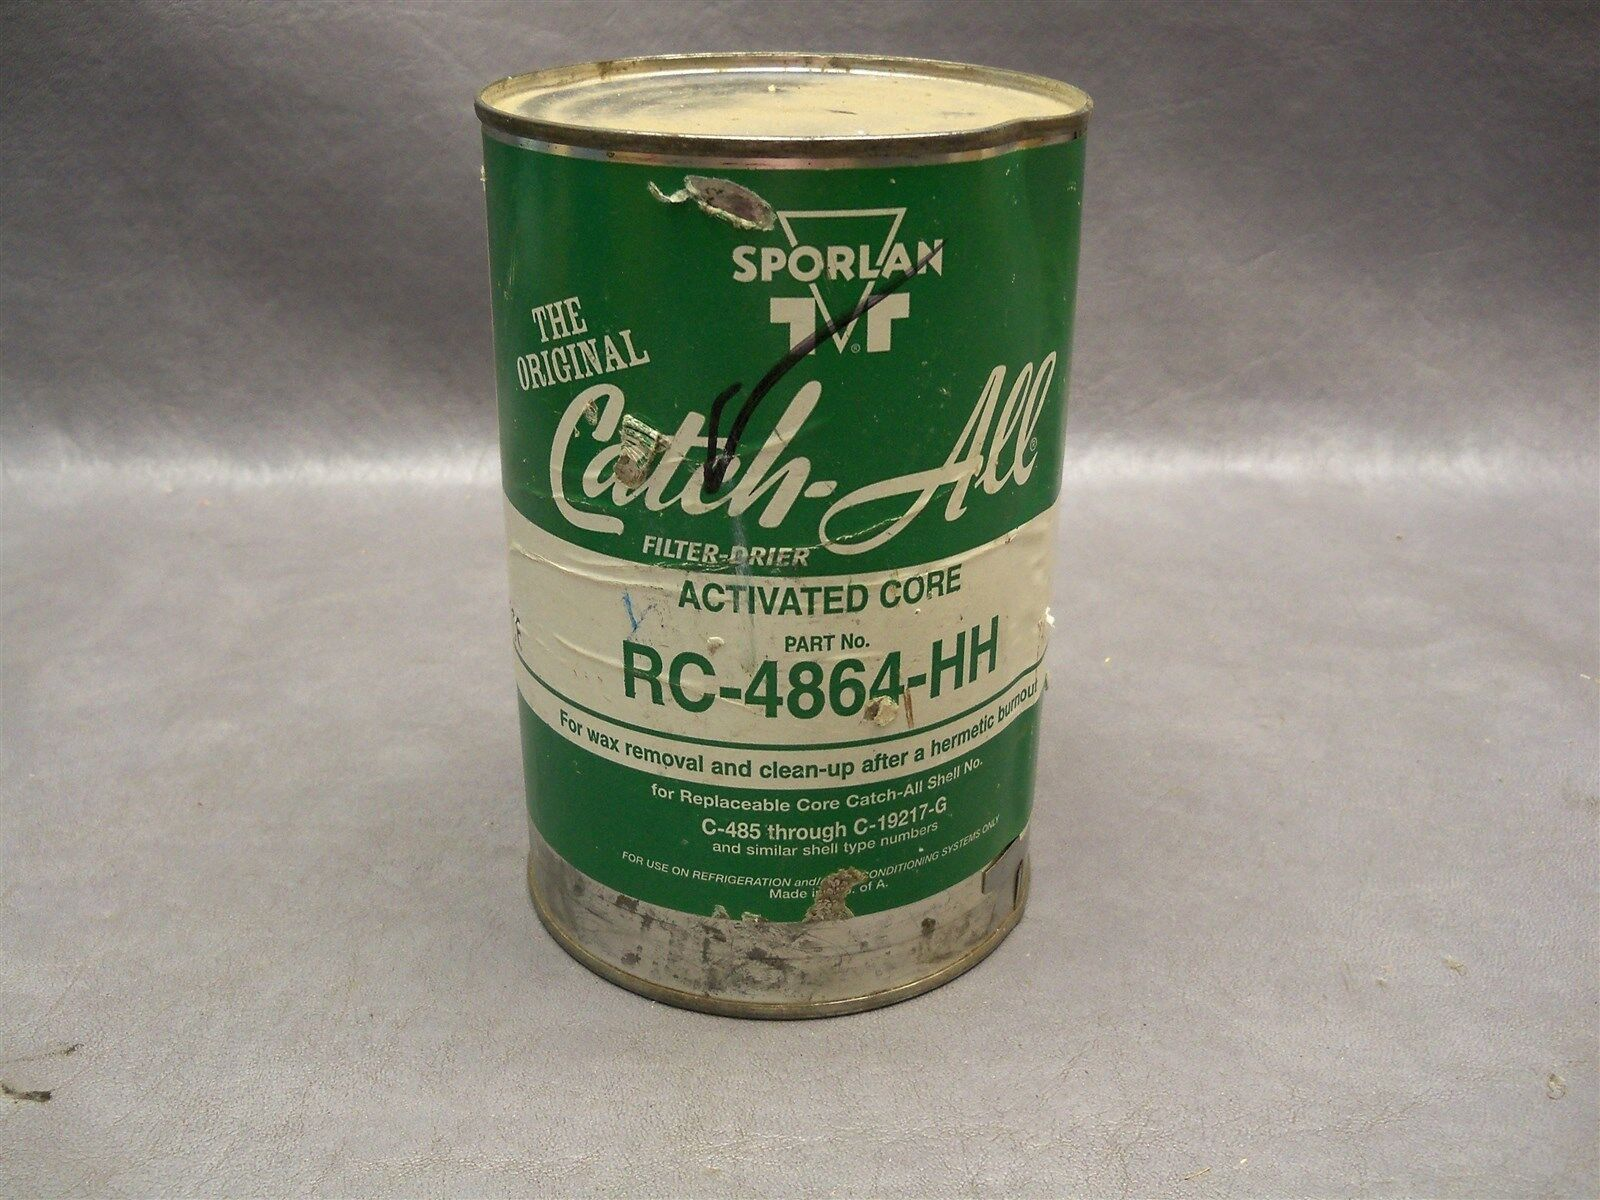 Sporlan Catch-All RC-4864-HH Activated Core Filter-Drier